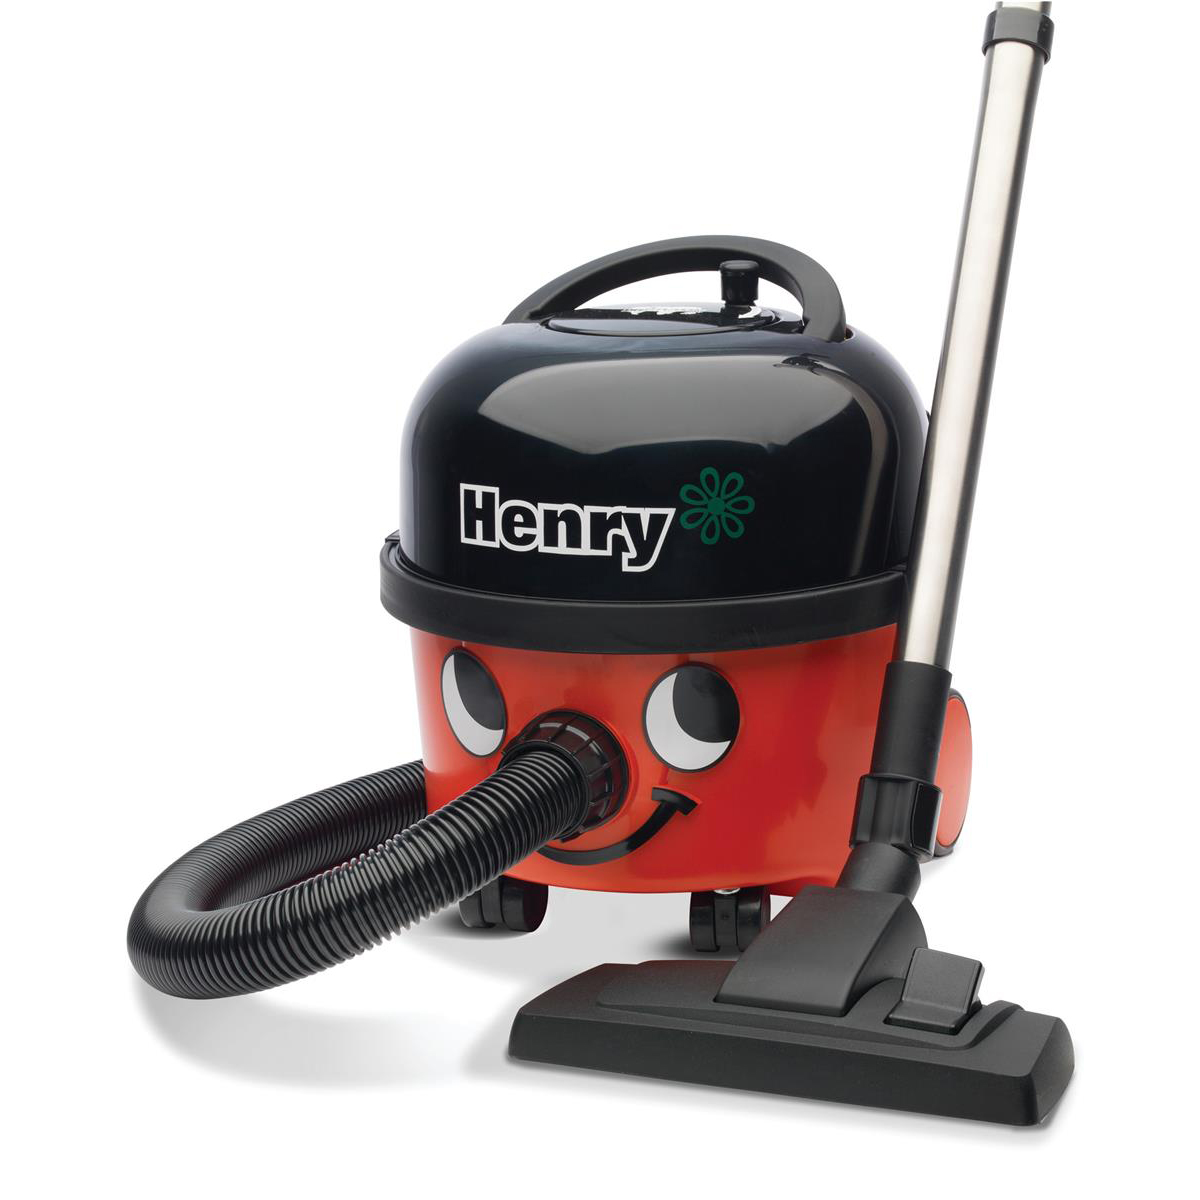 Vacuum Cleaners & Accessories Numatic Henry Vacuum Cleaner 620W 6 Litre 7.5kg W315xD340xH345mm Red Ref 902395